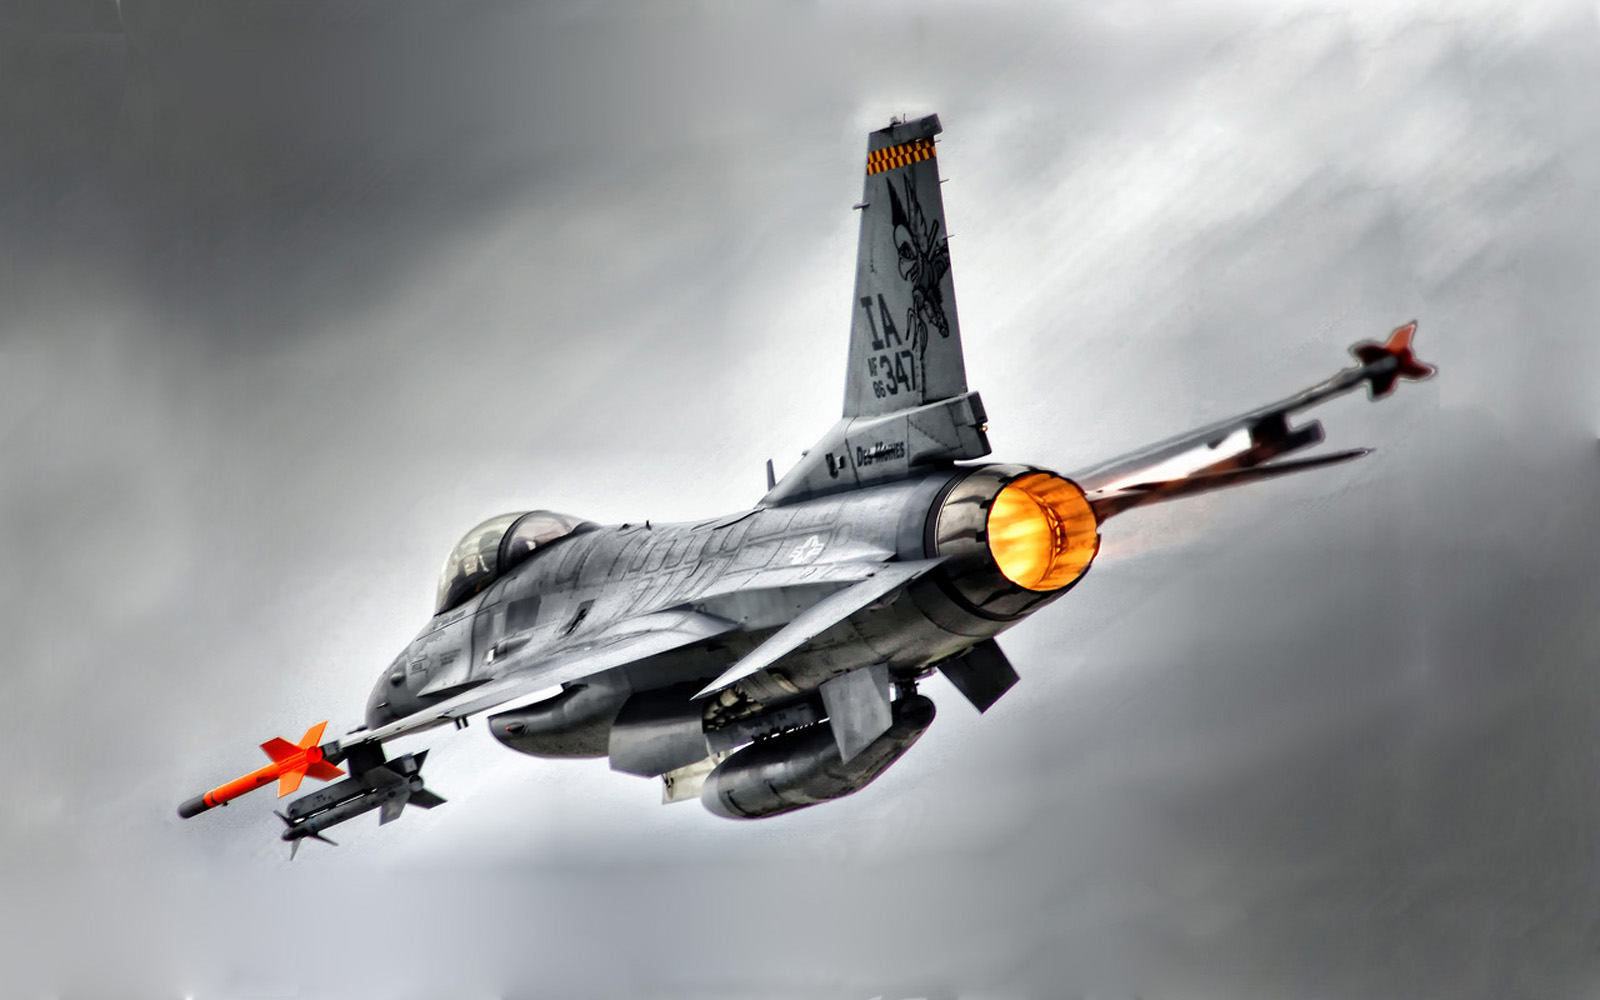 f16 fighting falcon hd wallpapers military wallbase